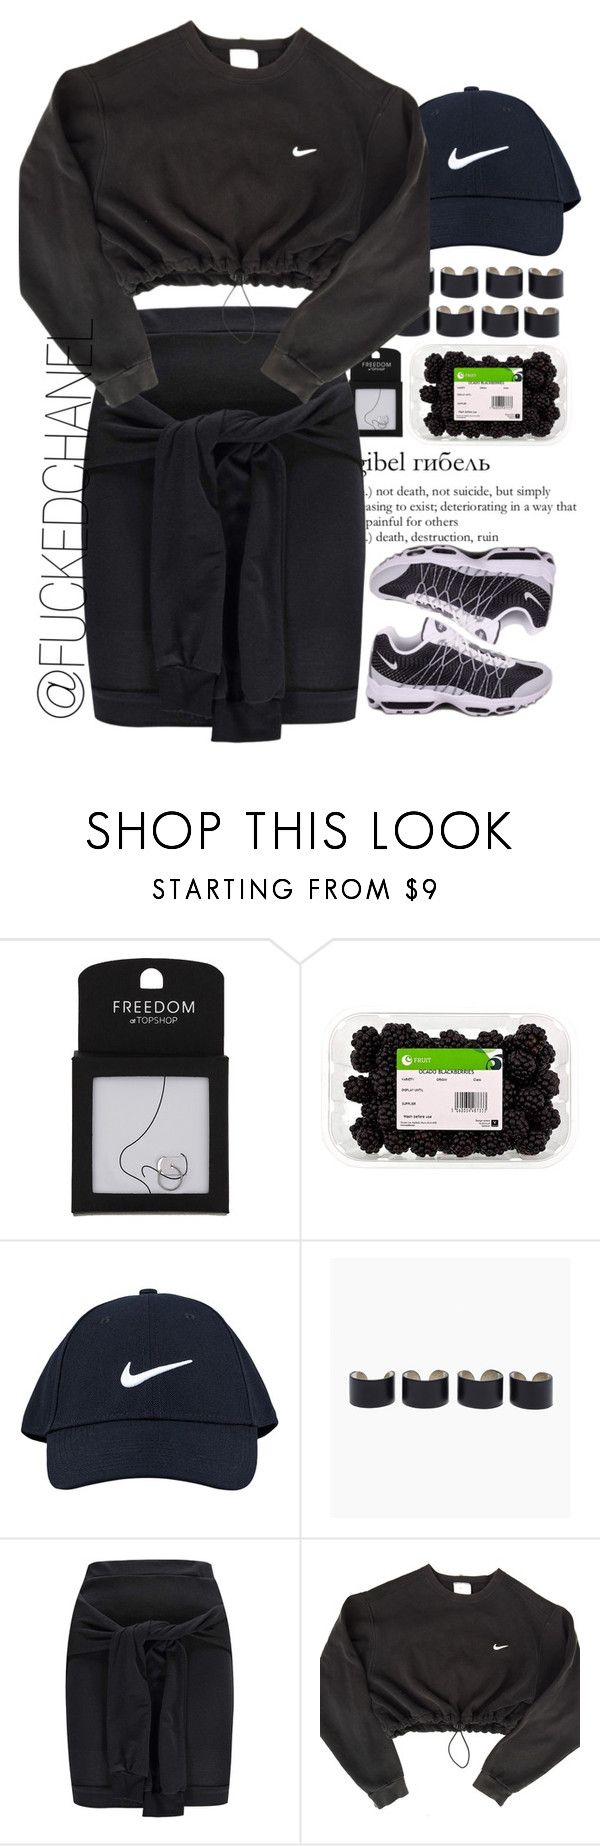 """""""Enfin en vacance !"""" by fuckedchanel ❤ liked on Polyvore featuring Topshop, NIKE, GE, Maison Margiela and Boohoo"""